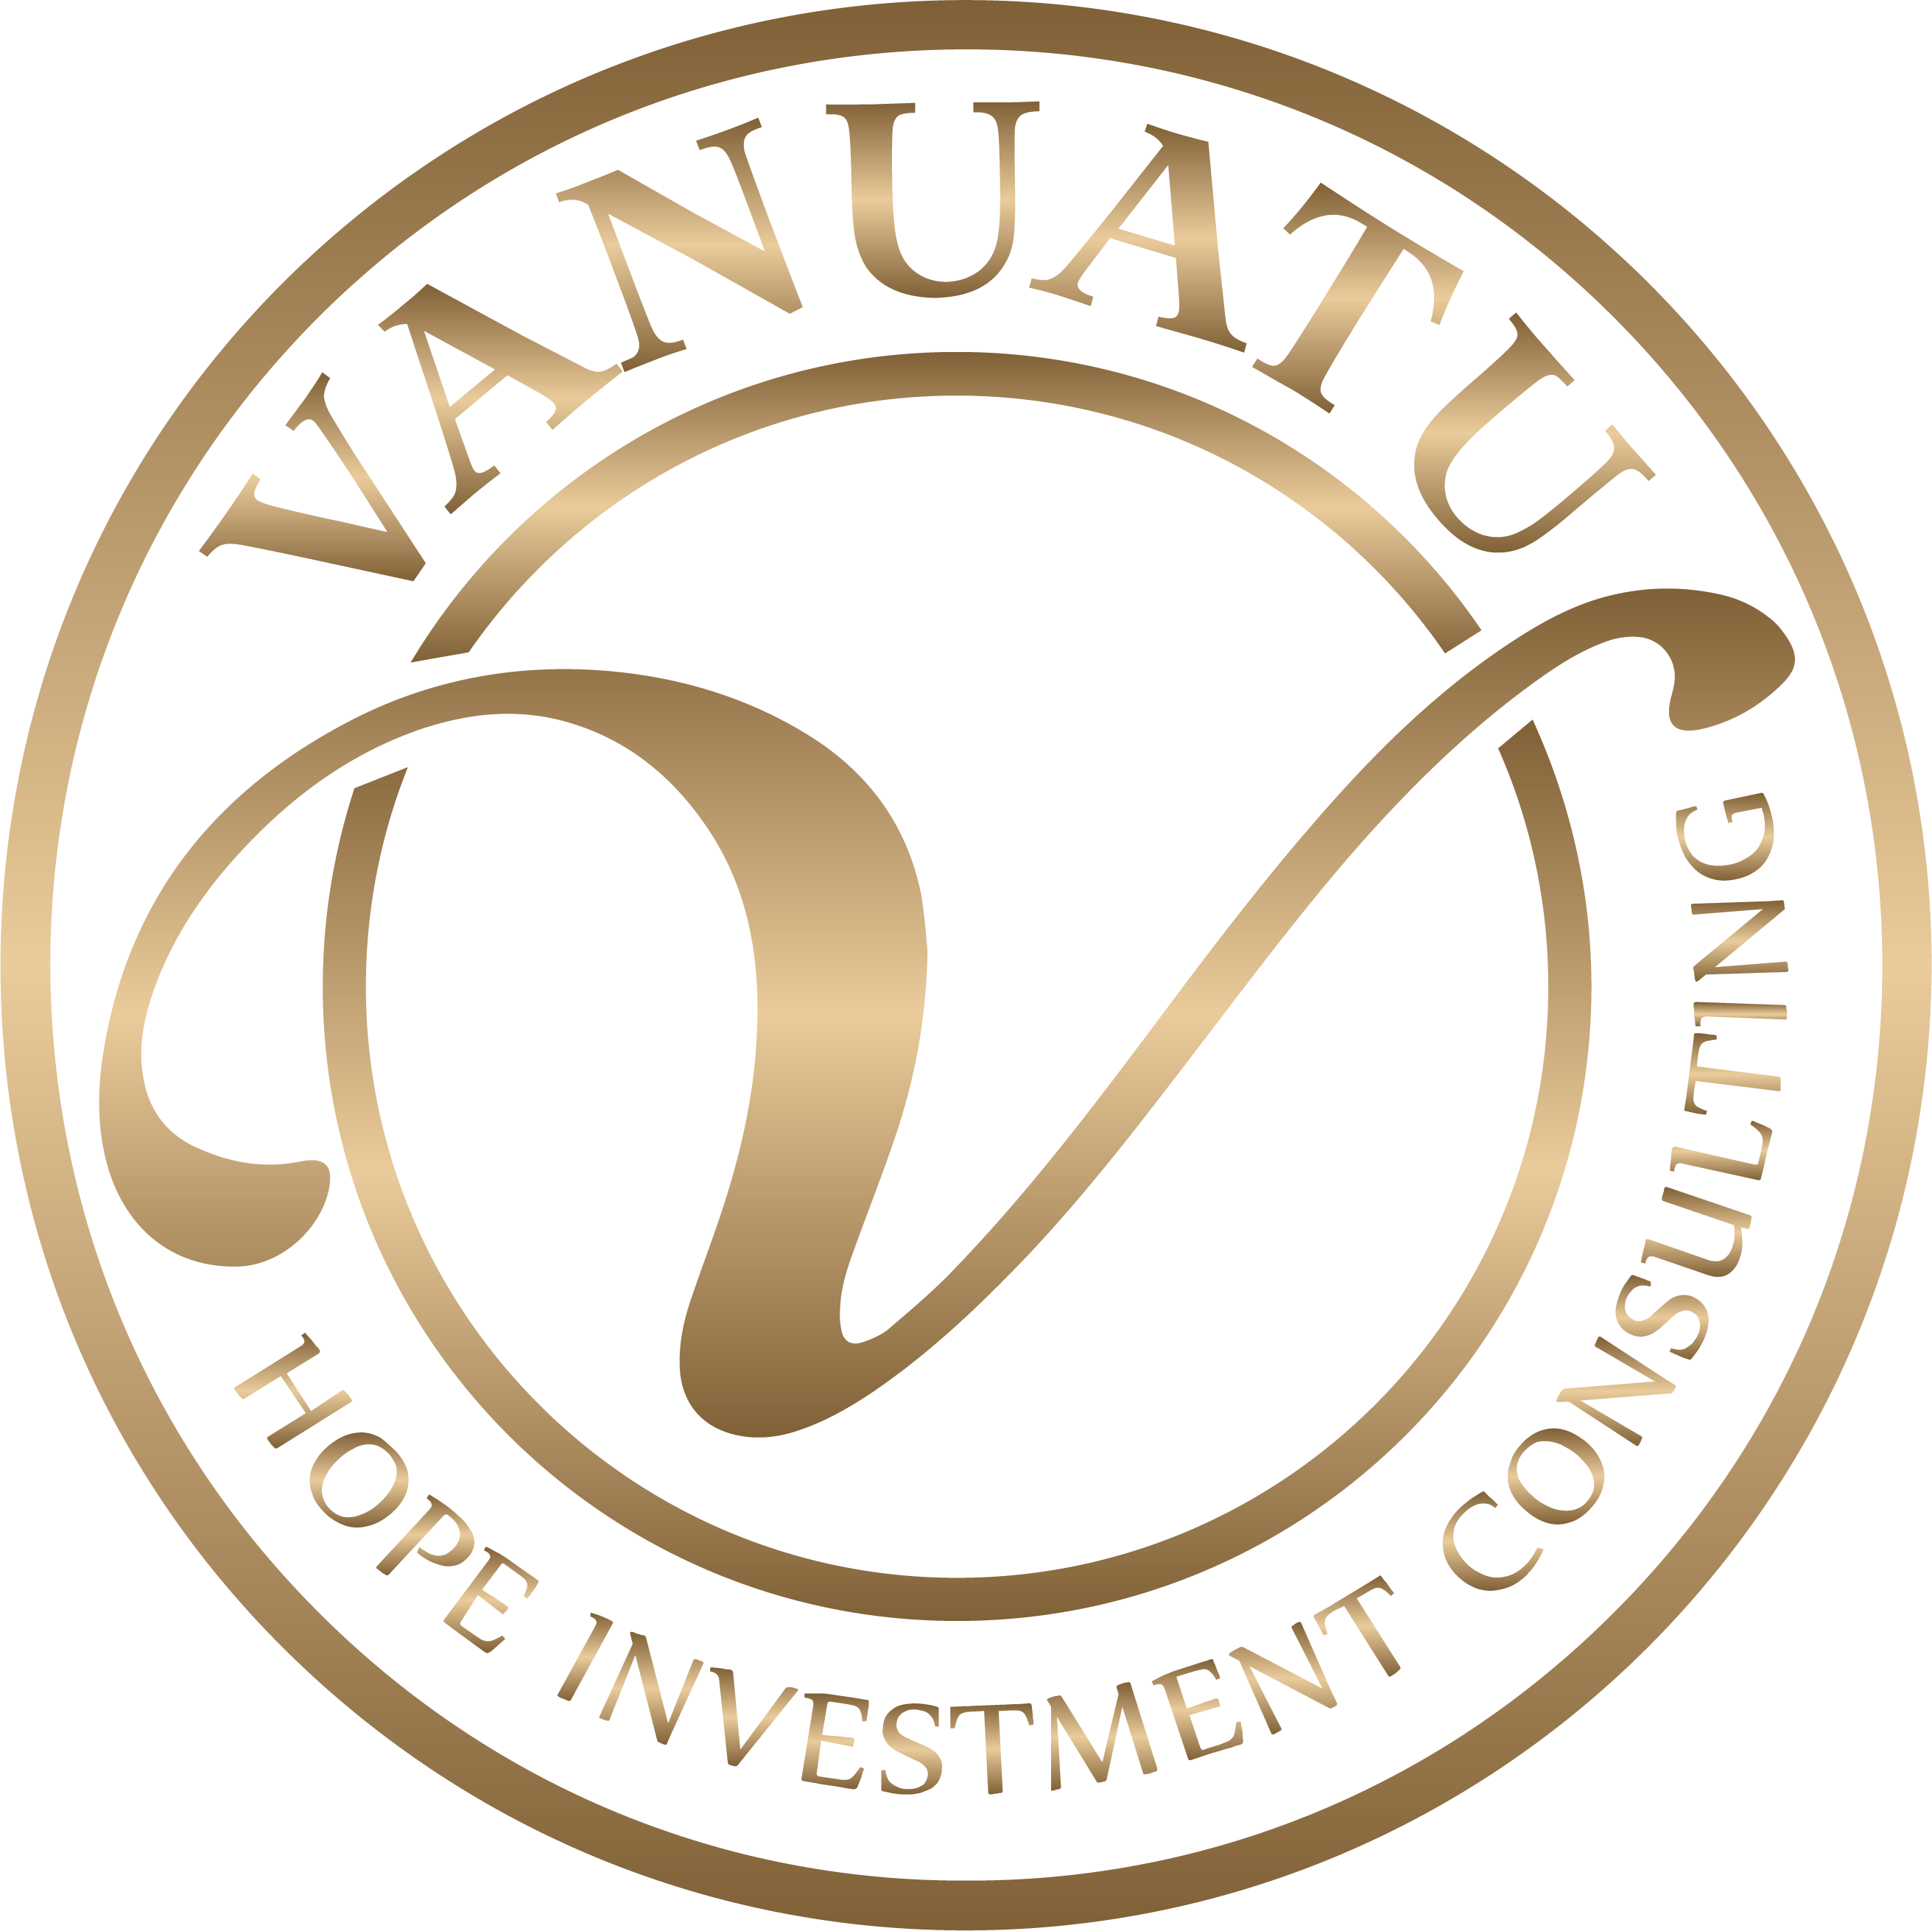 Gold logo of Vanuatu Hope Investments Consulting company